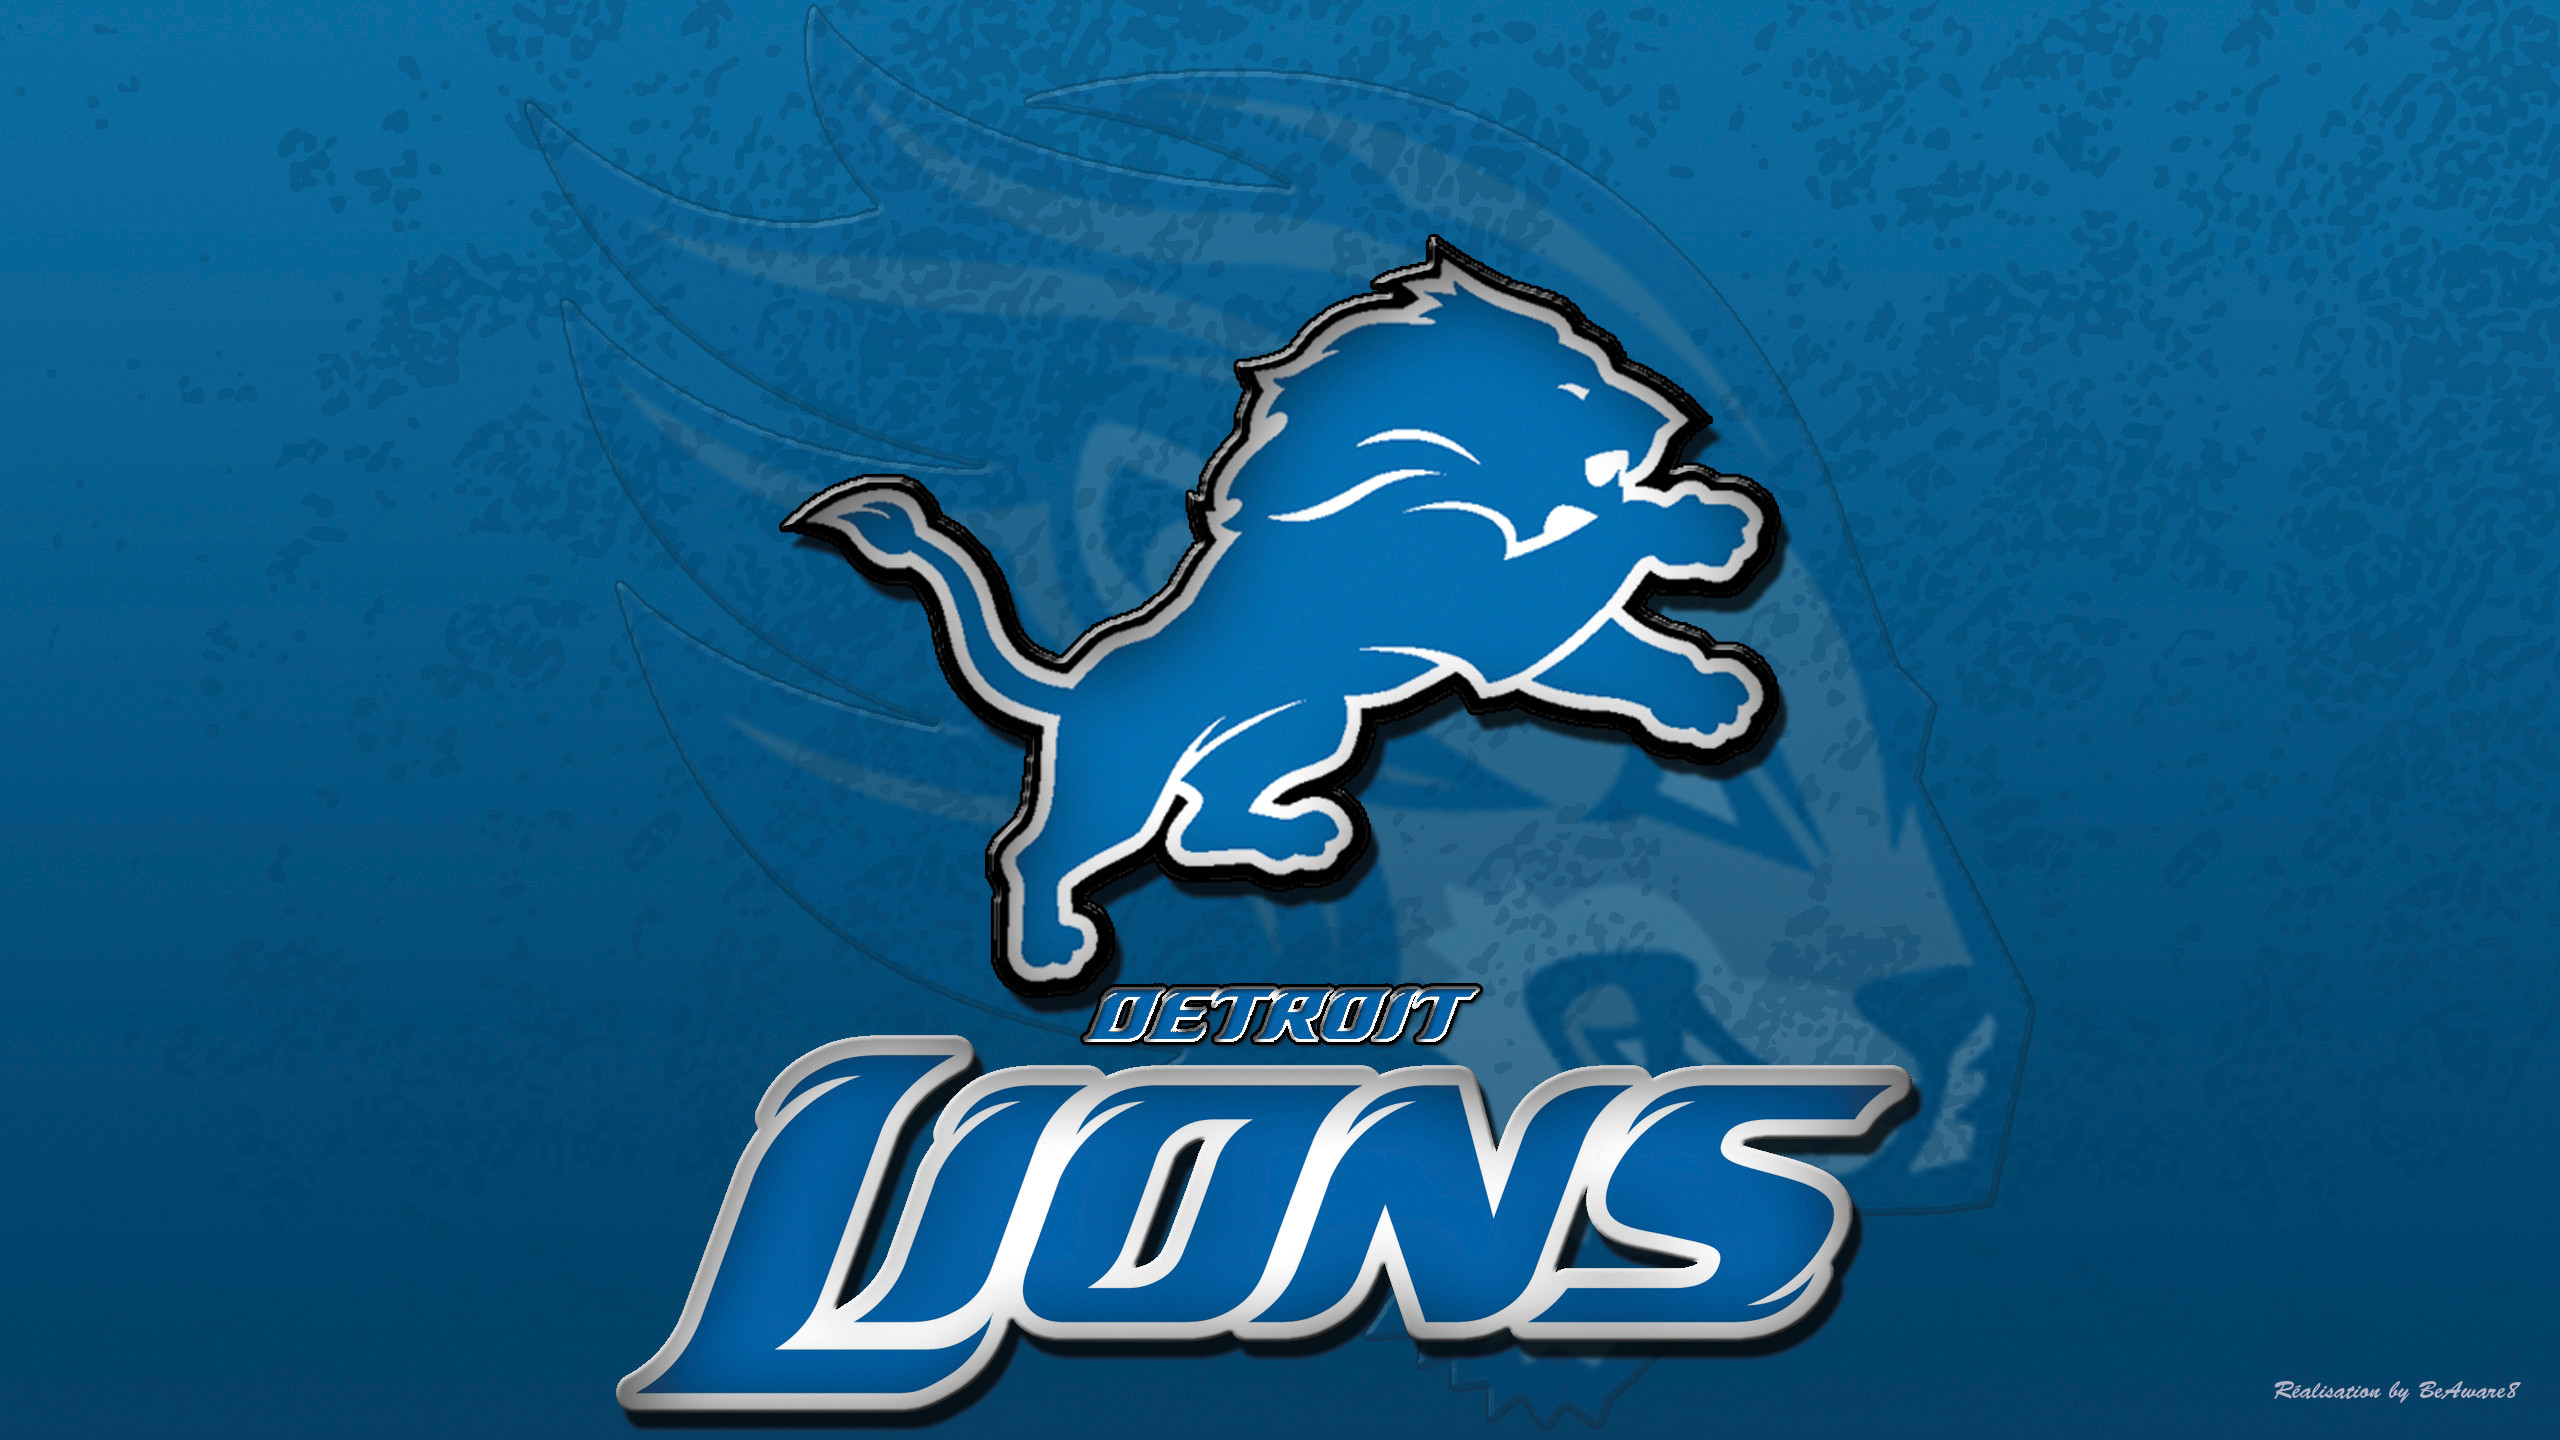 View the complete Detroit Lions team schedule on ESPNcom Includes home and away bye weeks preseason regular season Monday Night Football and printable schedules